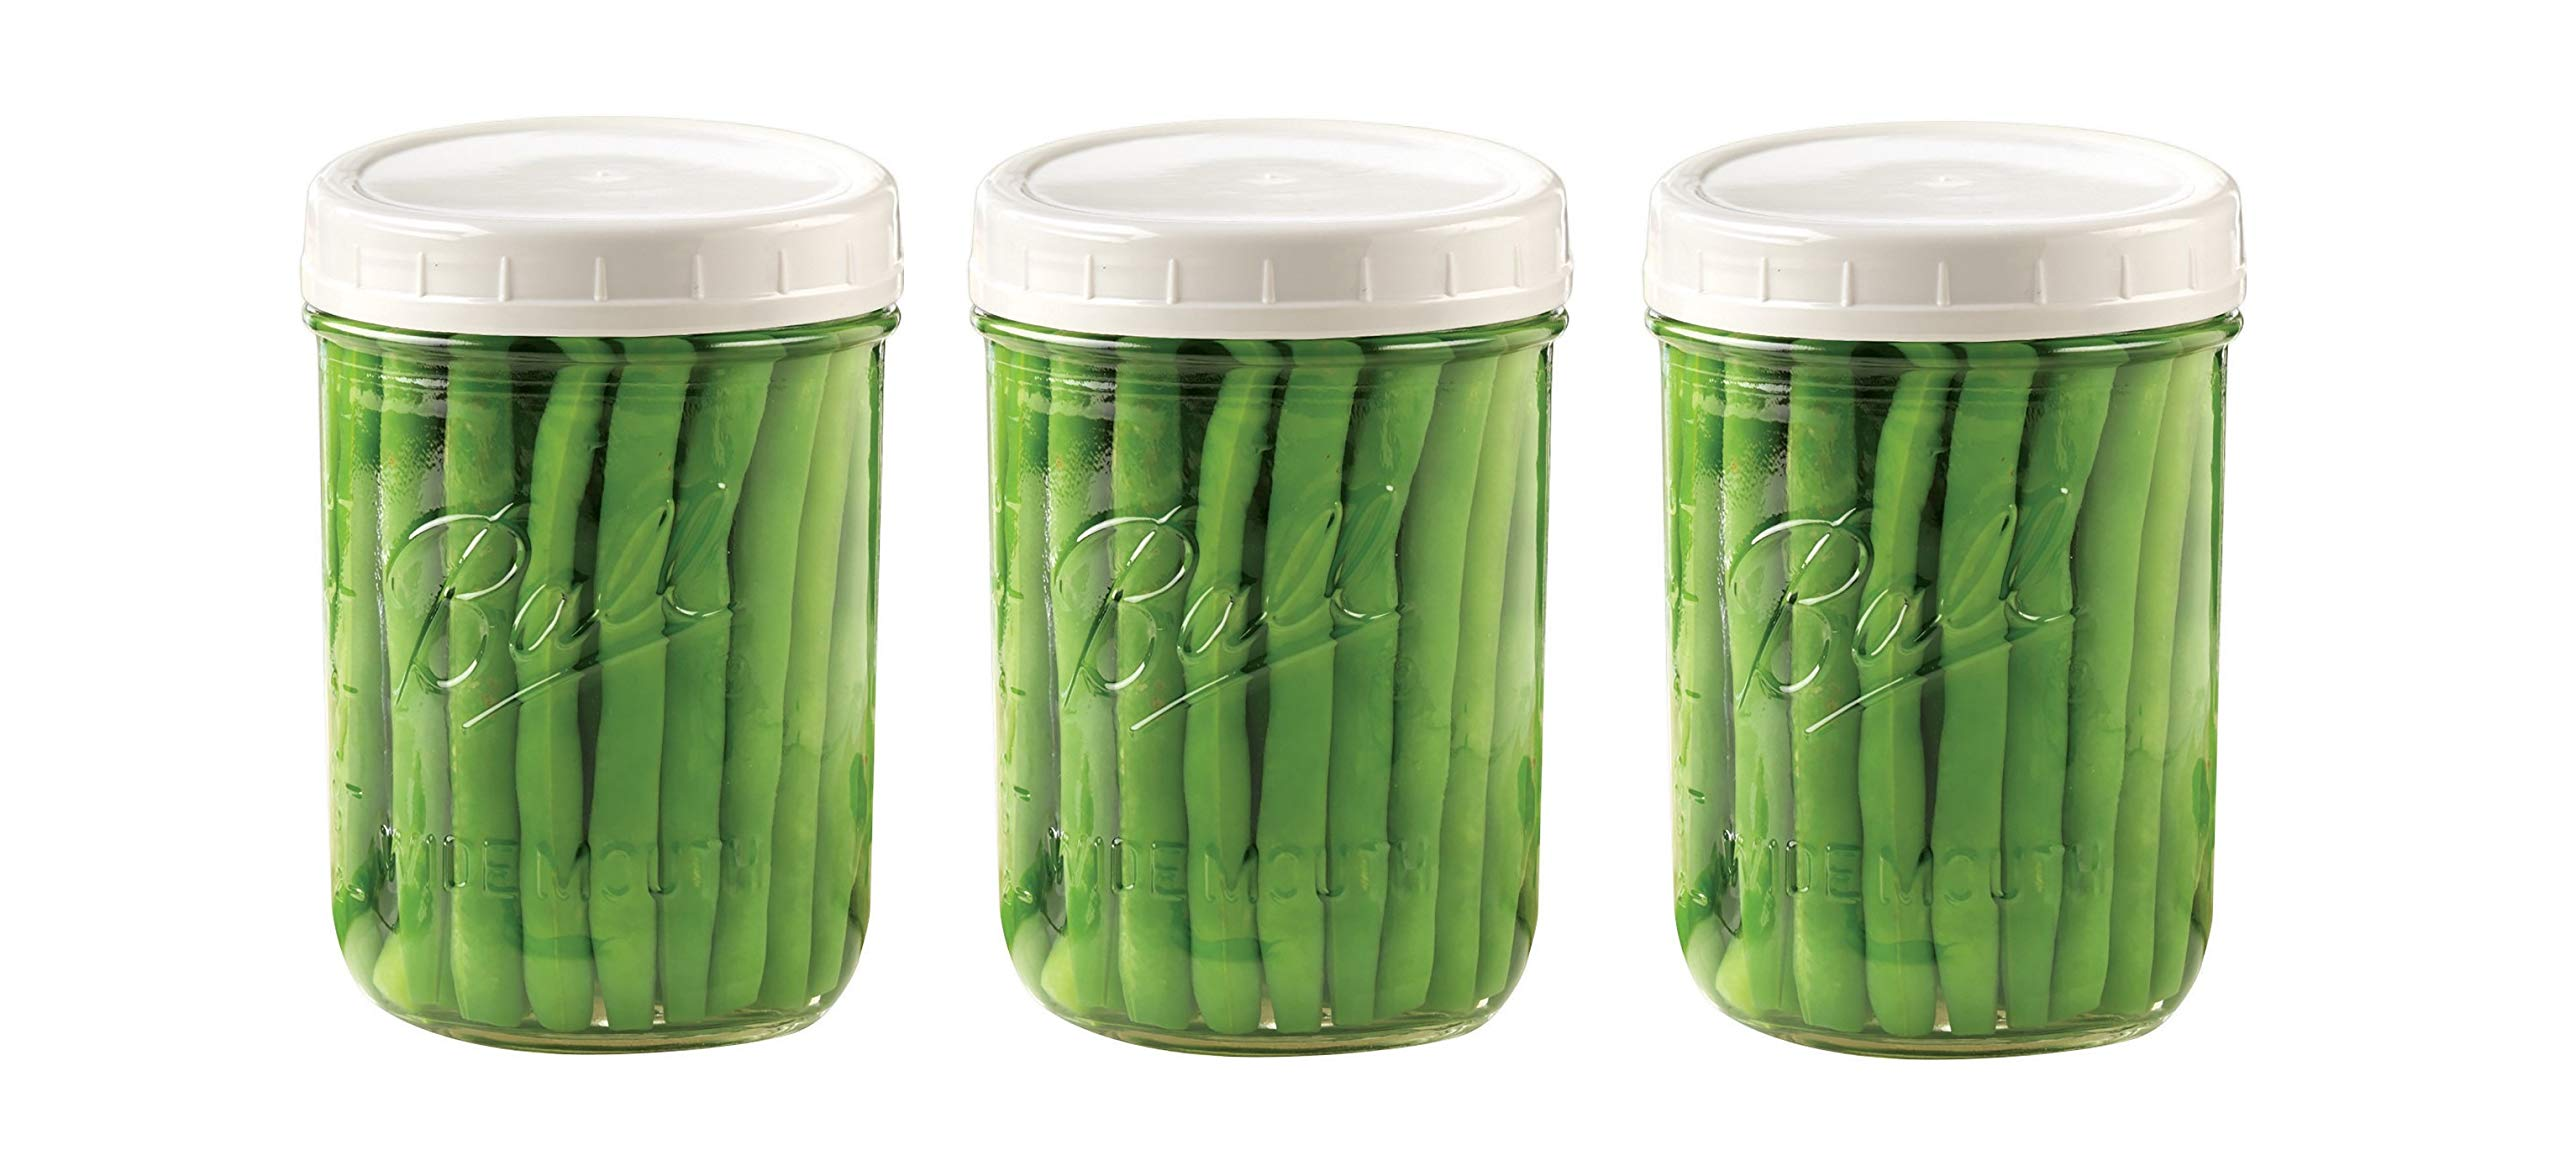 EASY-BUSY Kitchen Combo of Ball 16 oz. (Pint) Clear Glass Mason Canning Jar, With EB White Food Storage Plastic Lids Set of 3, Wide Mouth Caps fit WM Ball & Kerr jars & Containers, Reusable, BPA Free,